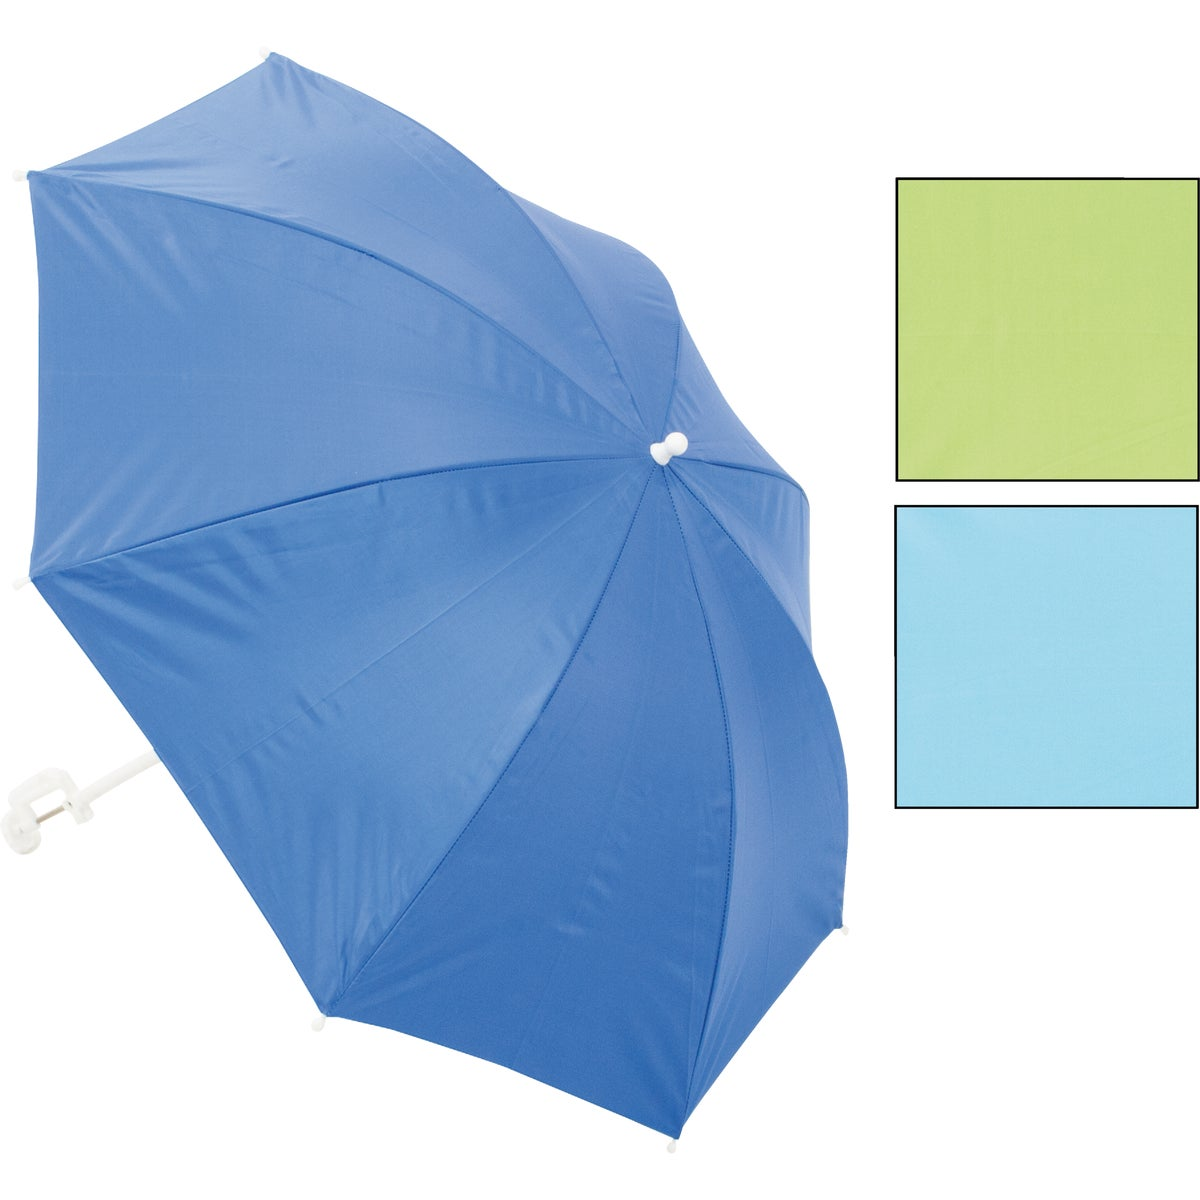 CLAMP-ON UMBRELLA - UB44-4669 by Rio Brands Llc